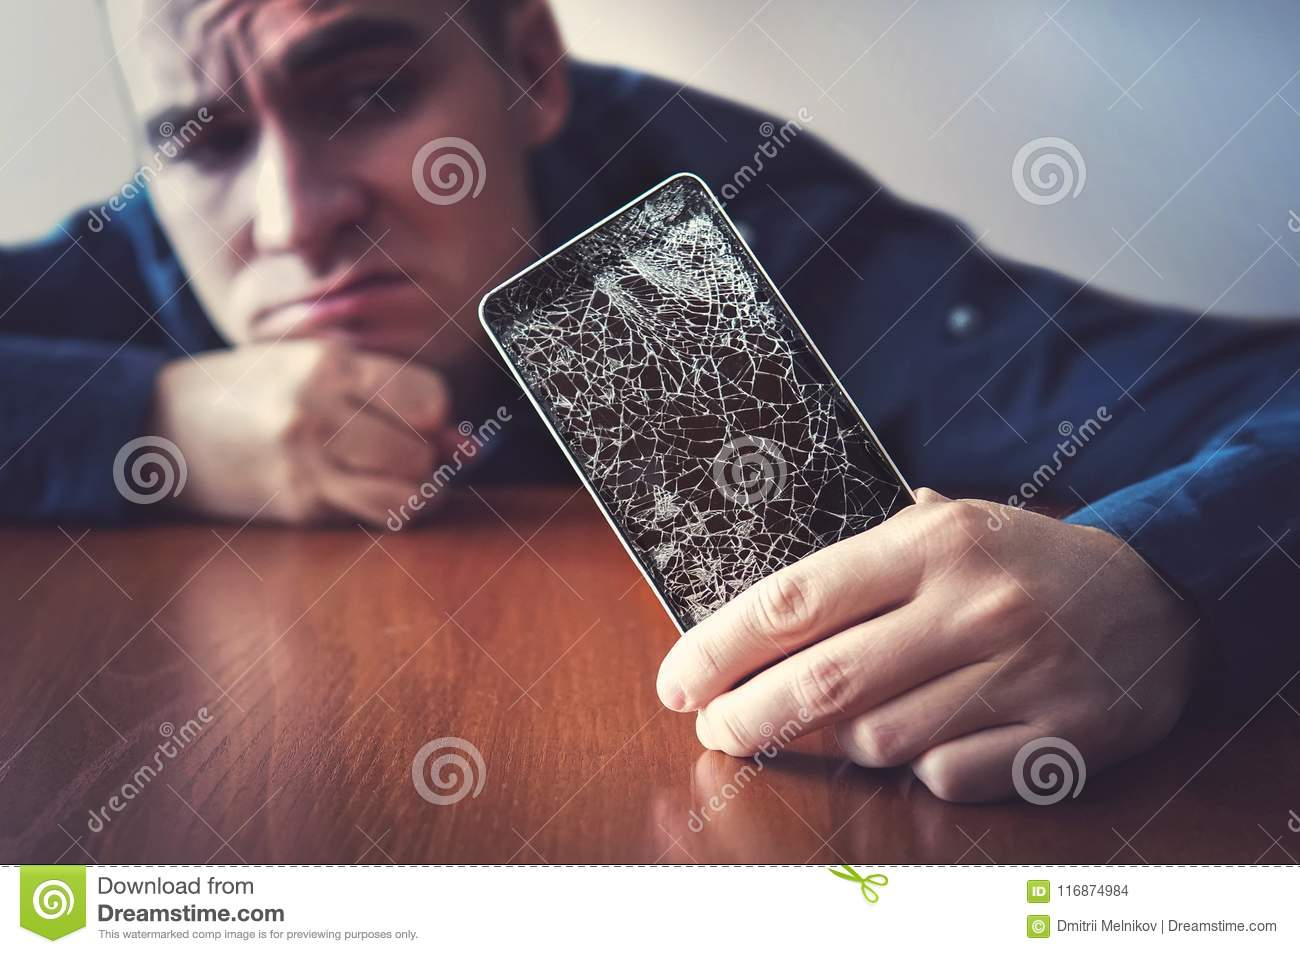 Hands holding a mobile phone with a broken screen over the wooden surface